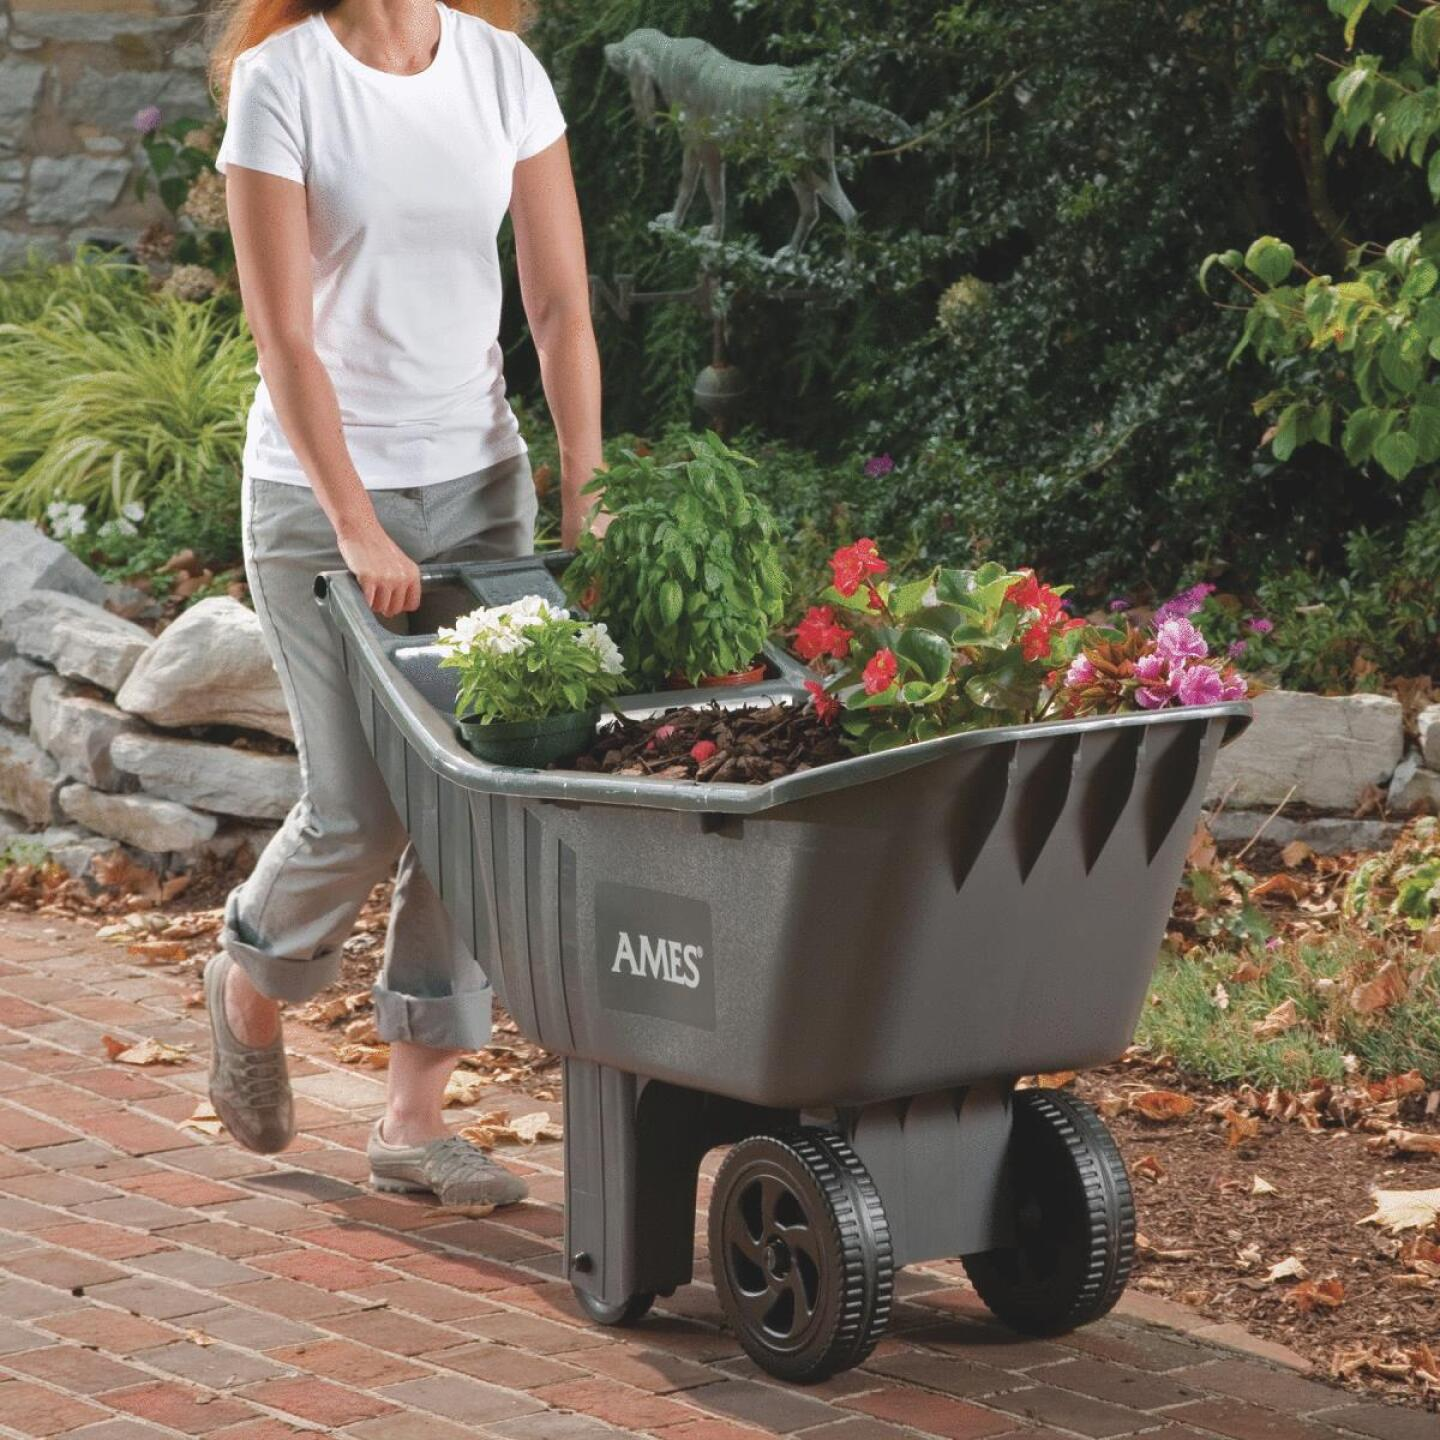 Ames Easy Roller 4 Cu. Ft. 250 Lb. Poly Garden Cart Image 3